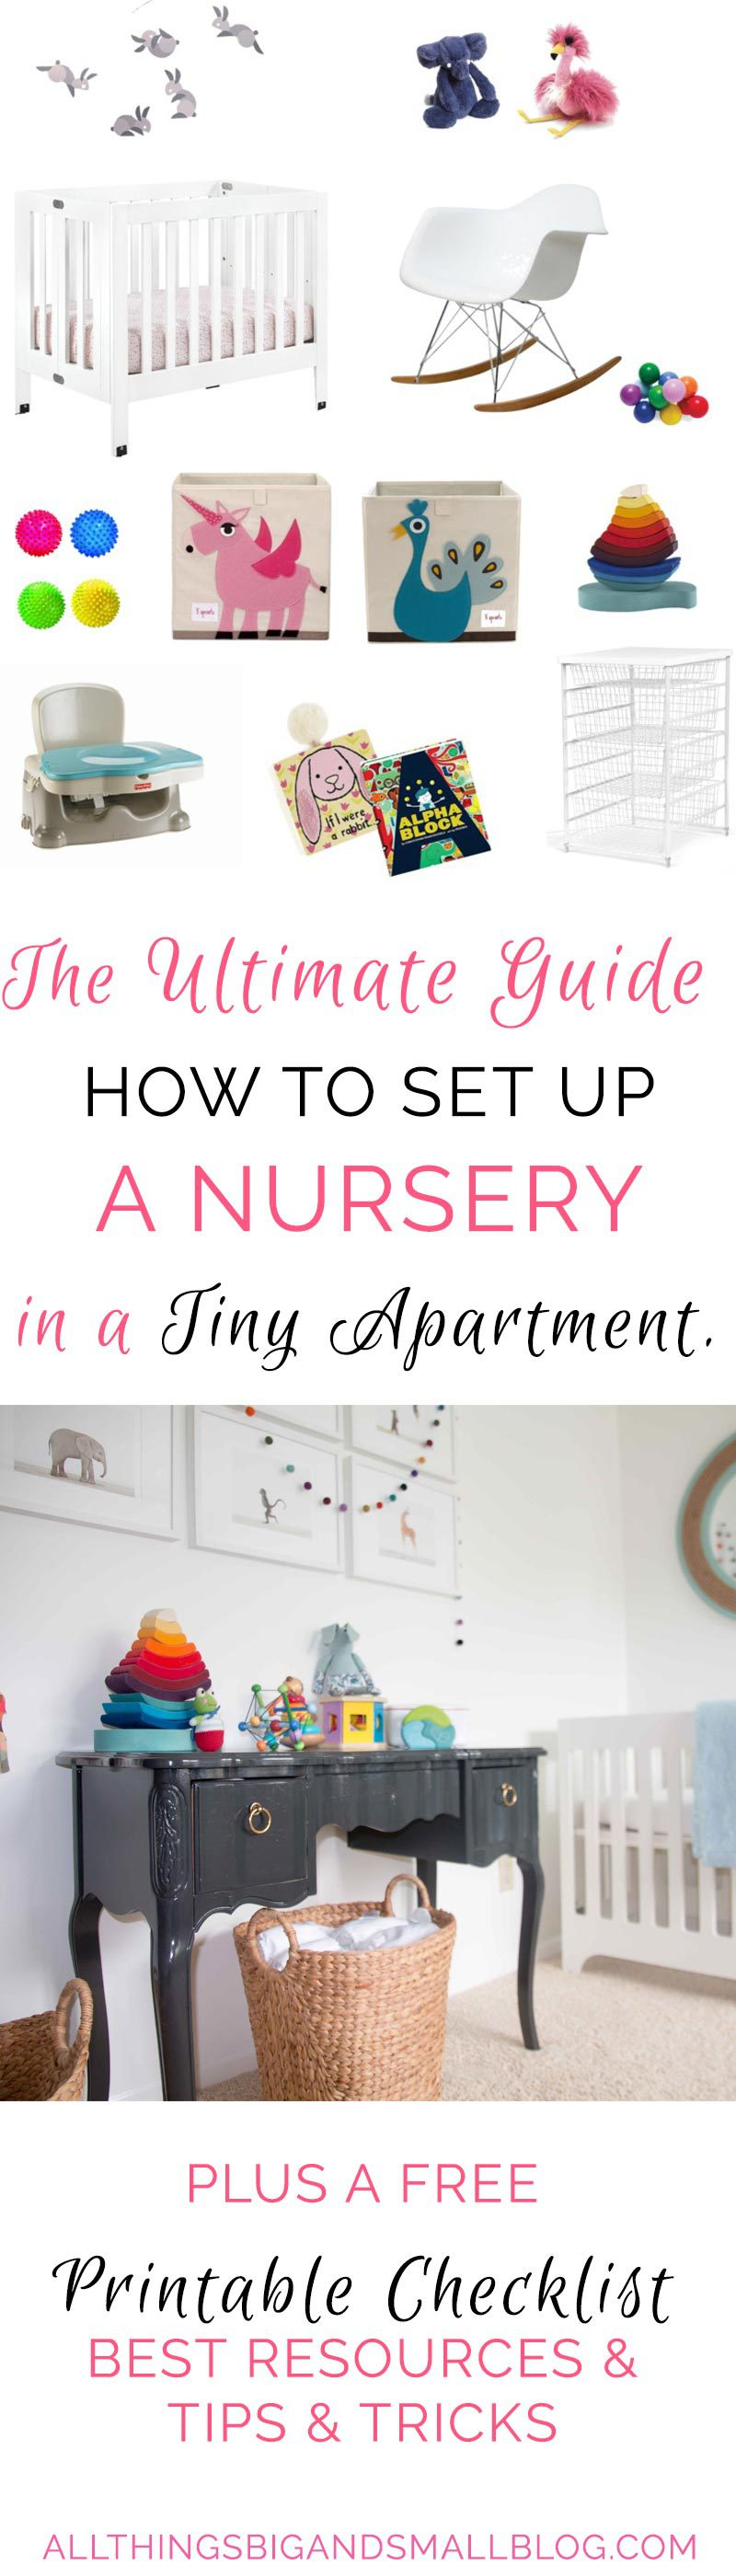 how to set up a nursery in a small room | small nursery | All Things Big and Small